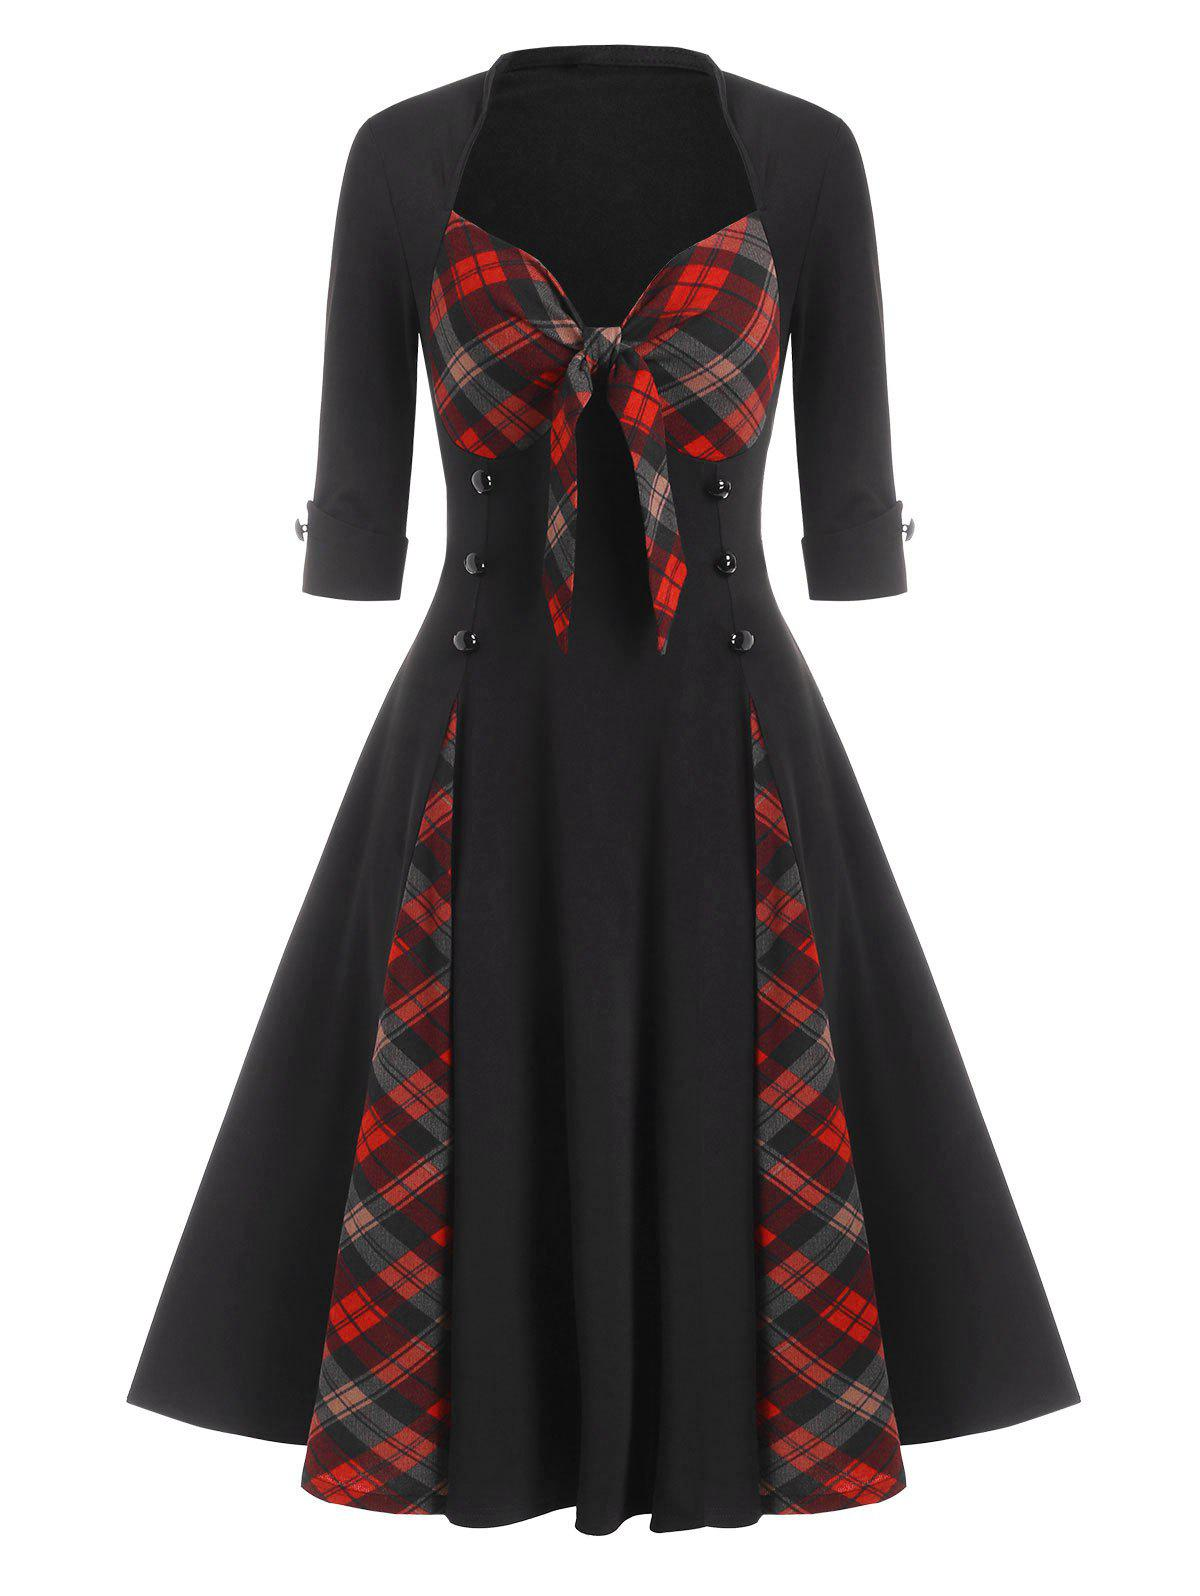 Plaid Print Mock Button Bowknot Detail Vintage Dress - BLACK M